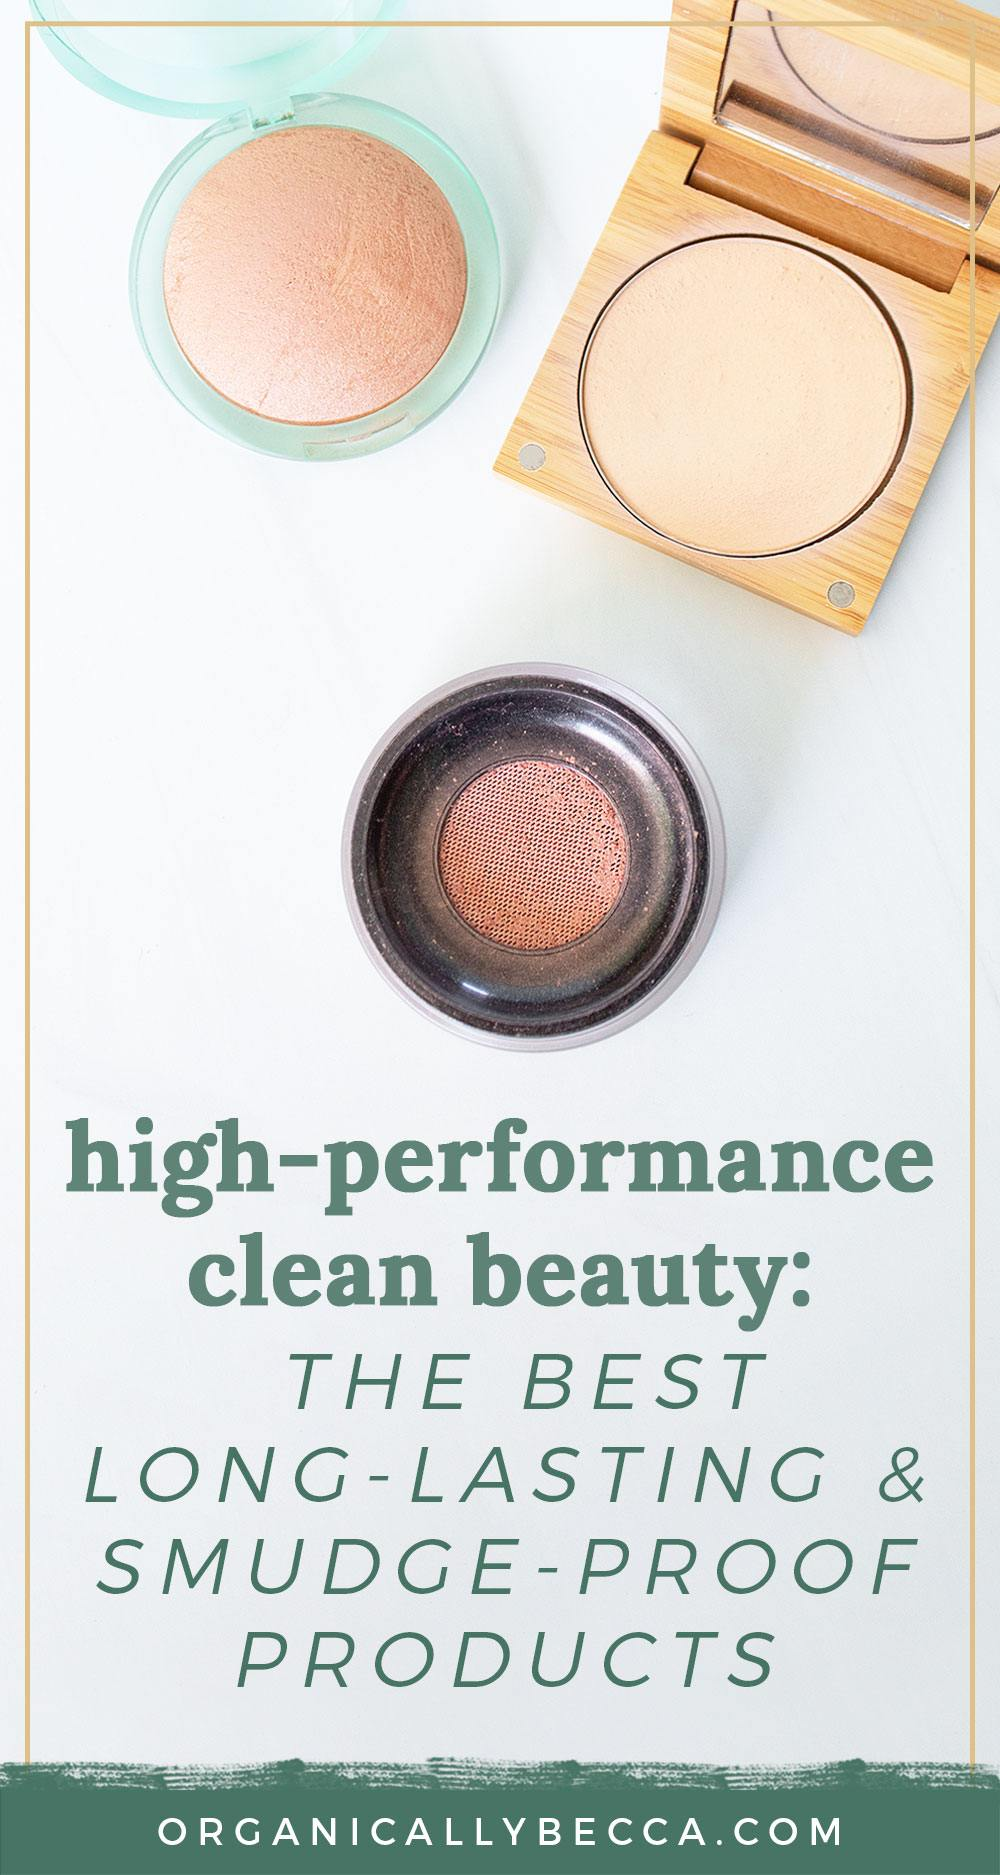 High-Performance Clean Beauty: Best Long-Lasting & Smudge-Proof Products